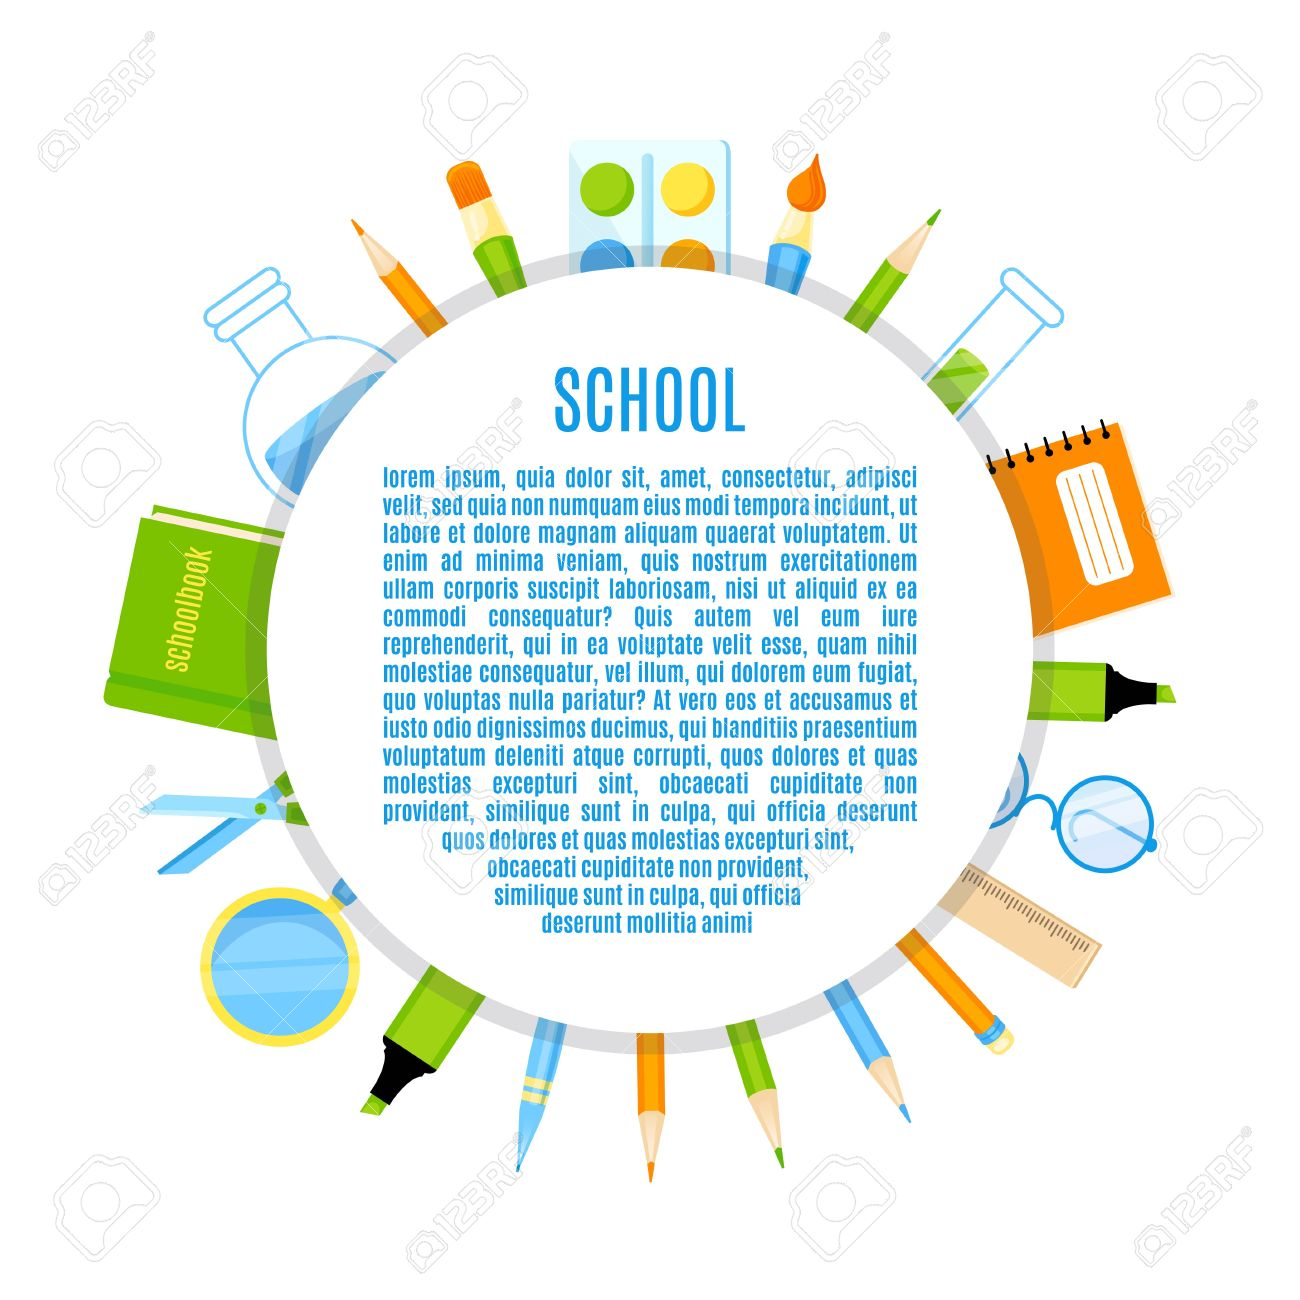 School Circle With School Supplies Vector Design. School.